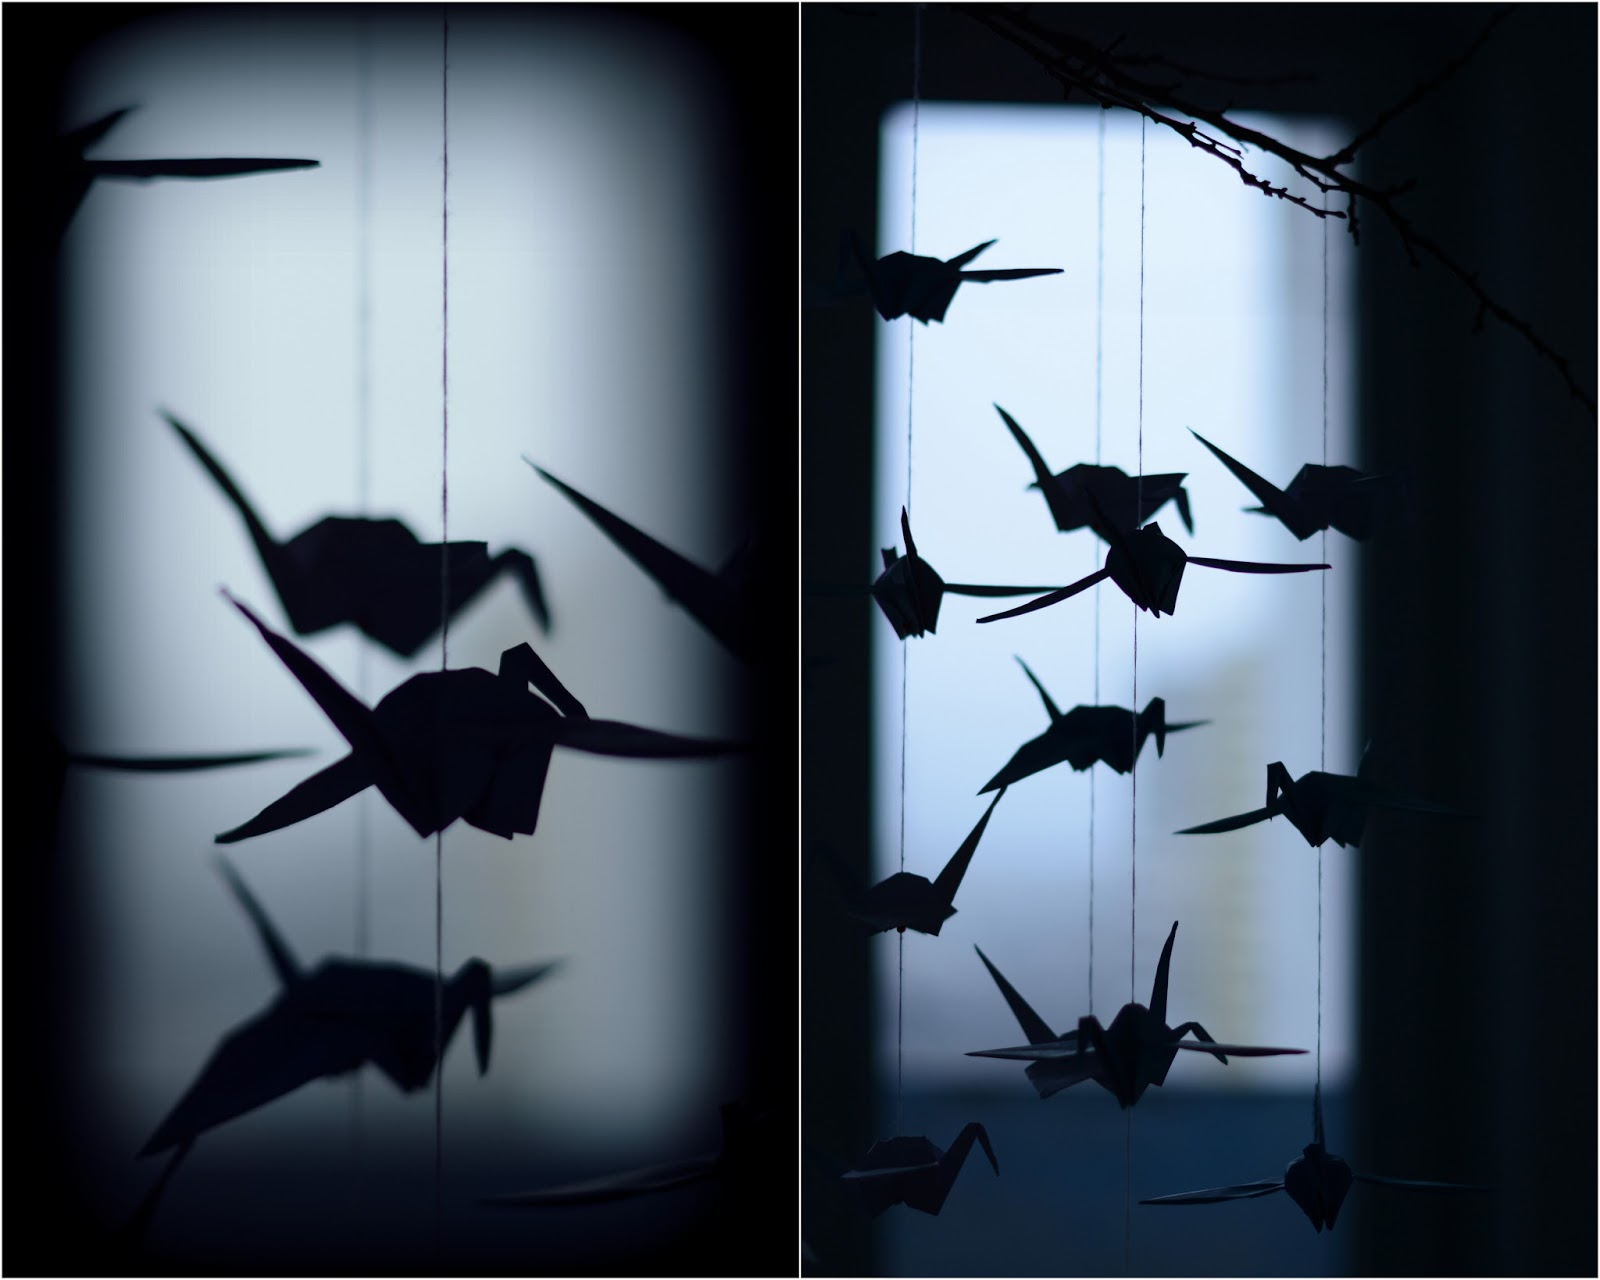 Origami paper cranes photograph, dark, monochromatic background, silhouette of birds